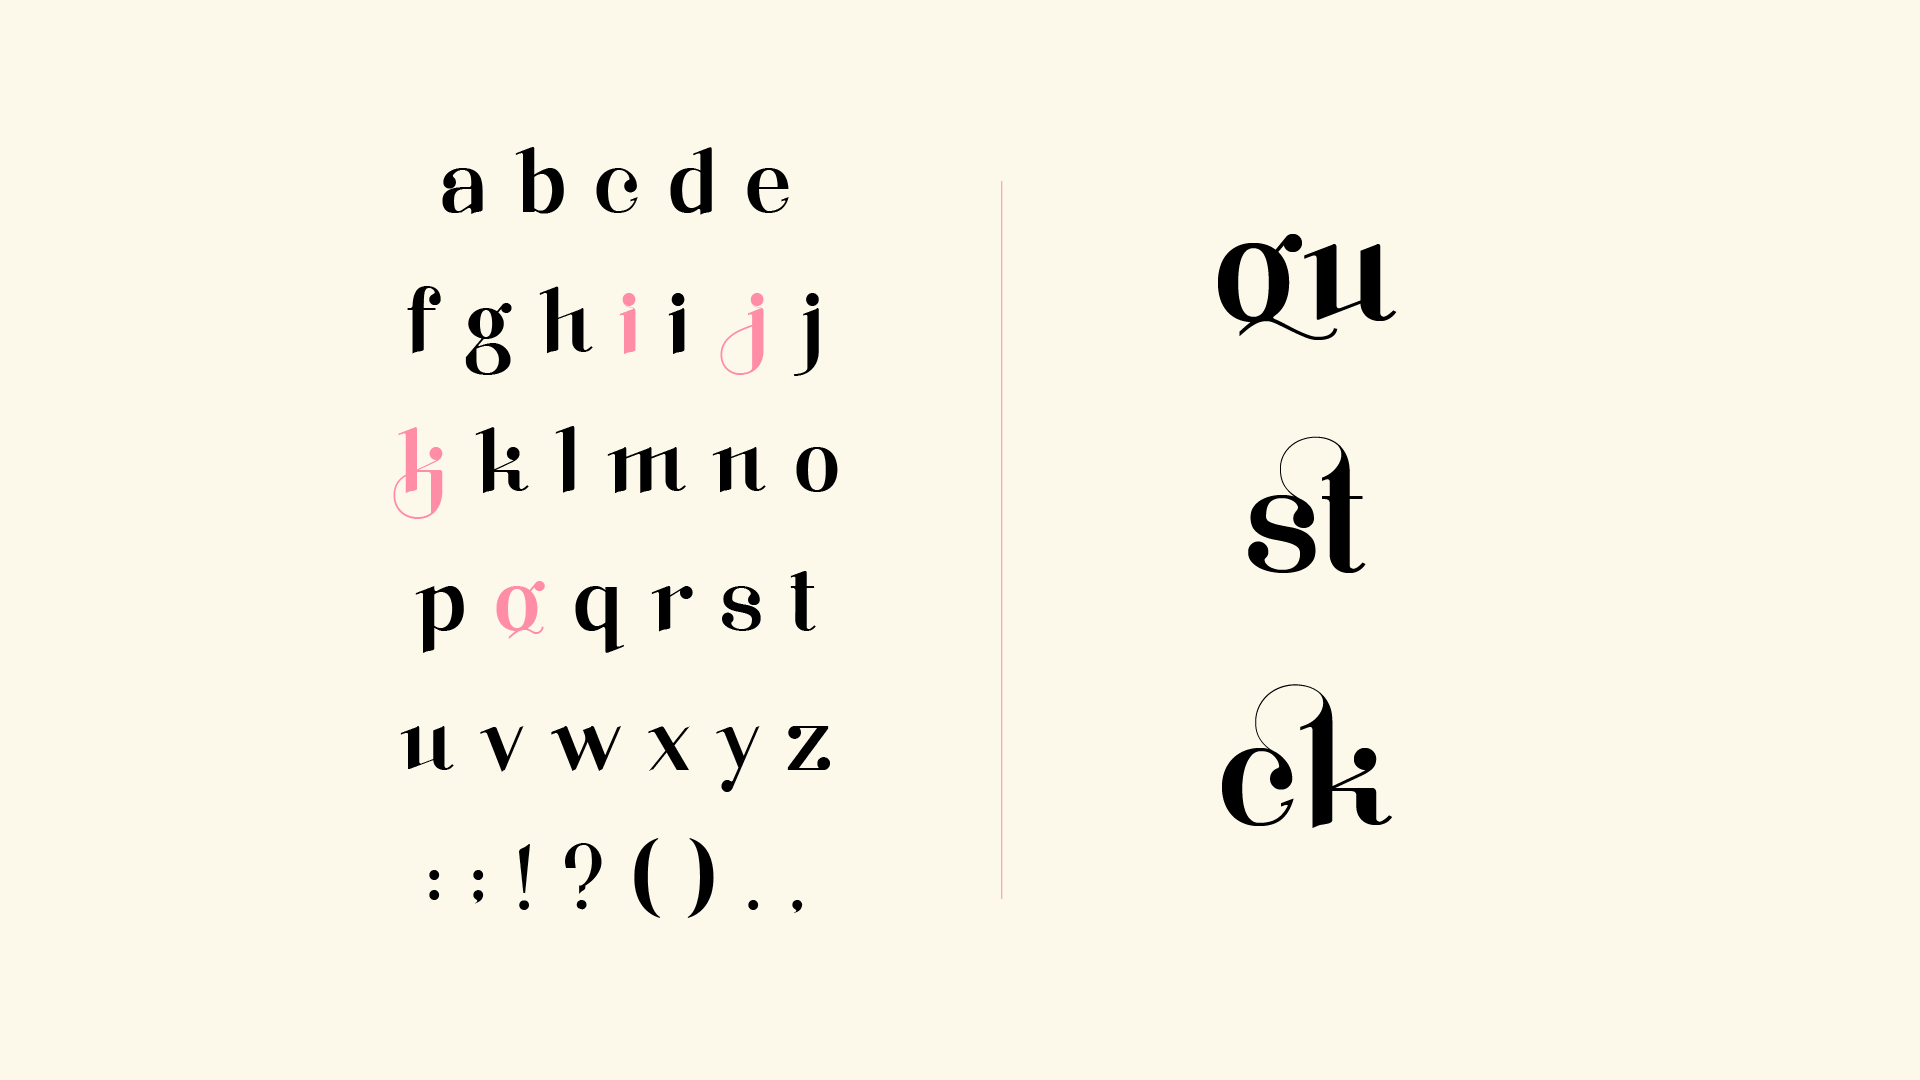 A typeface specimen for a variable font made for display purposes and kinetic identities, called Klout.